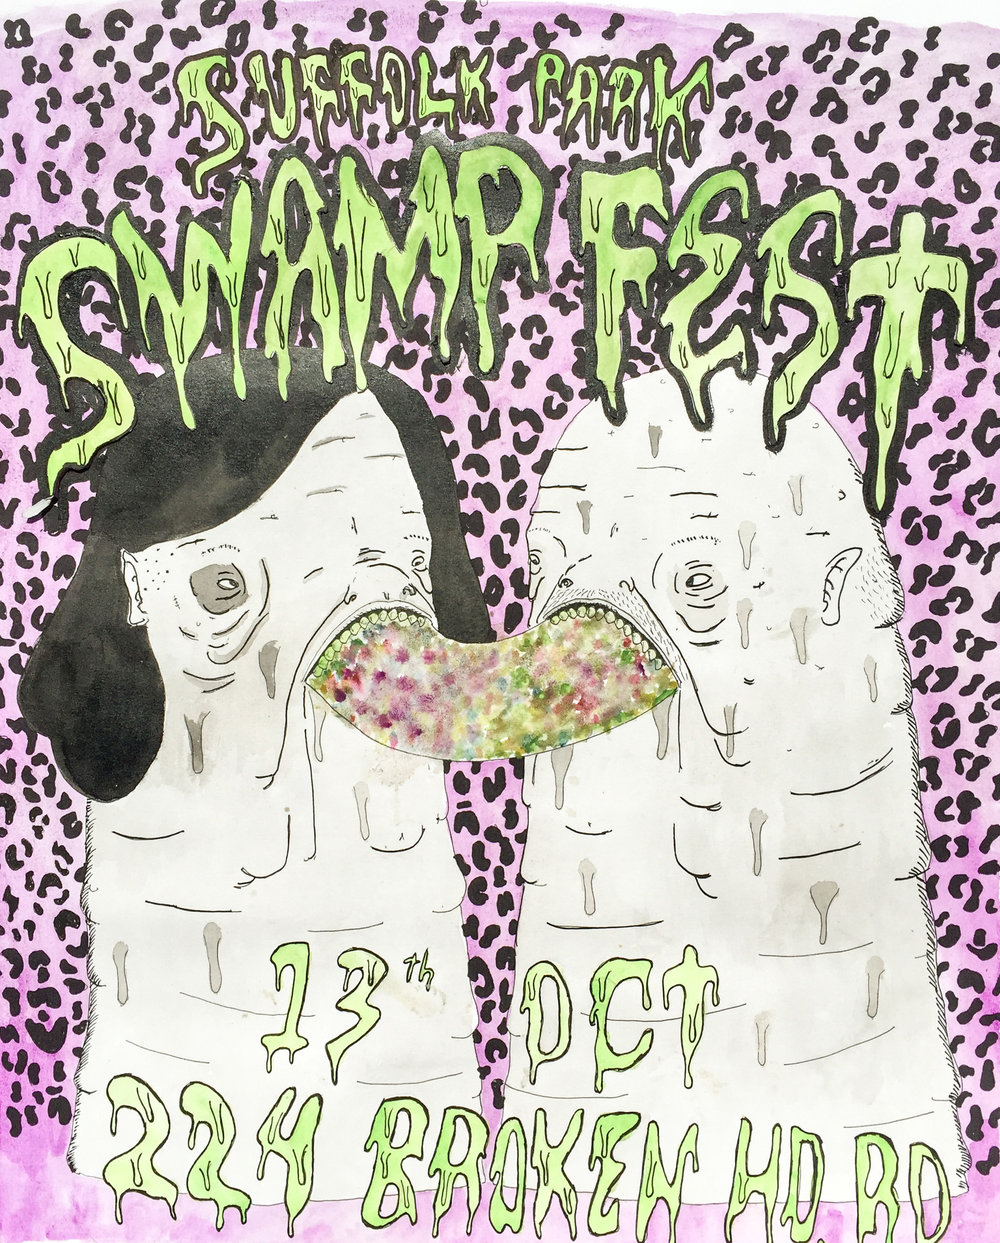 Swampfest poster 2012